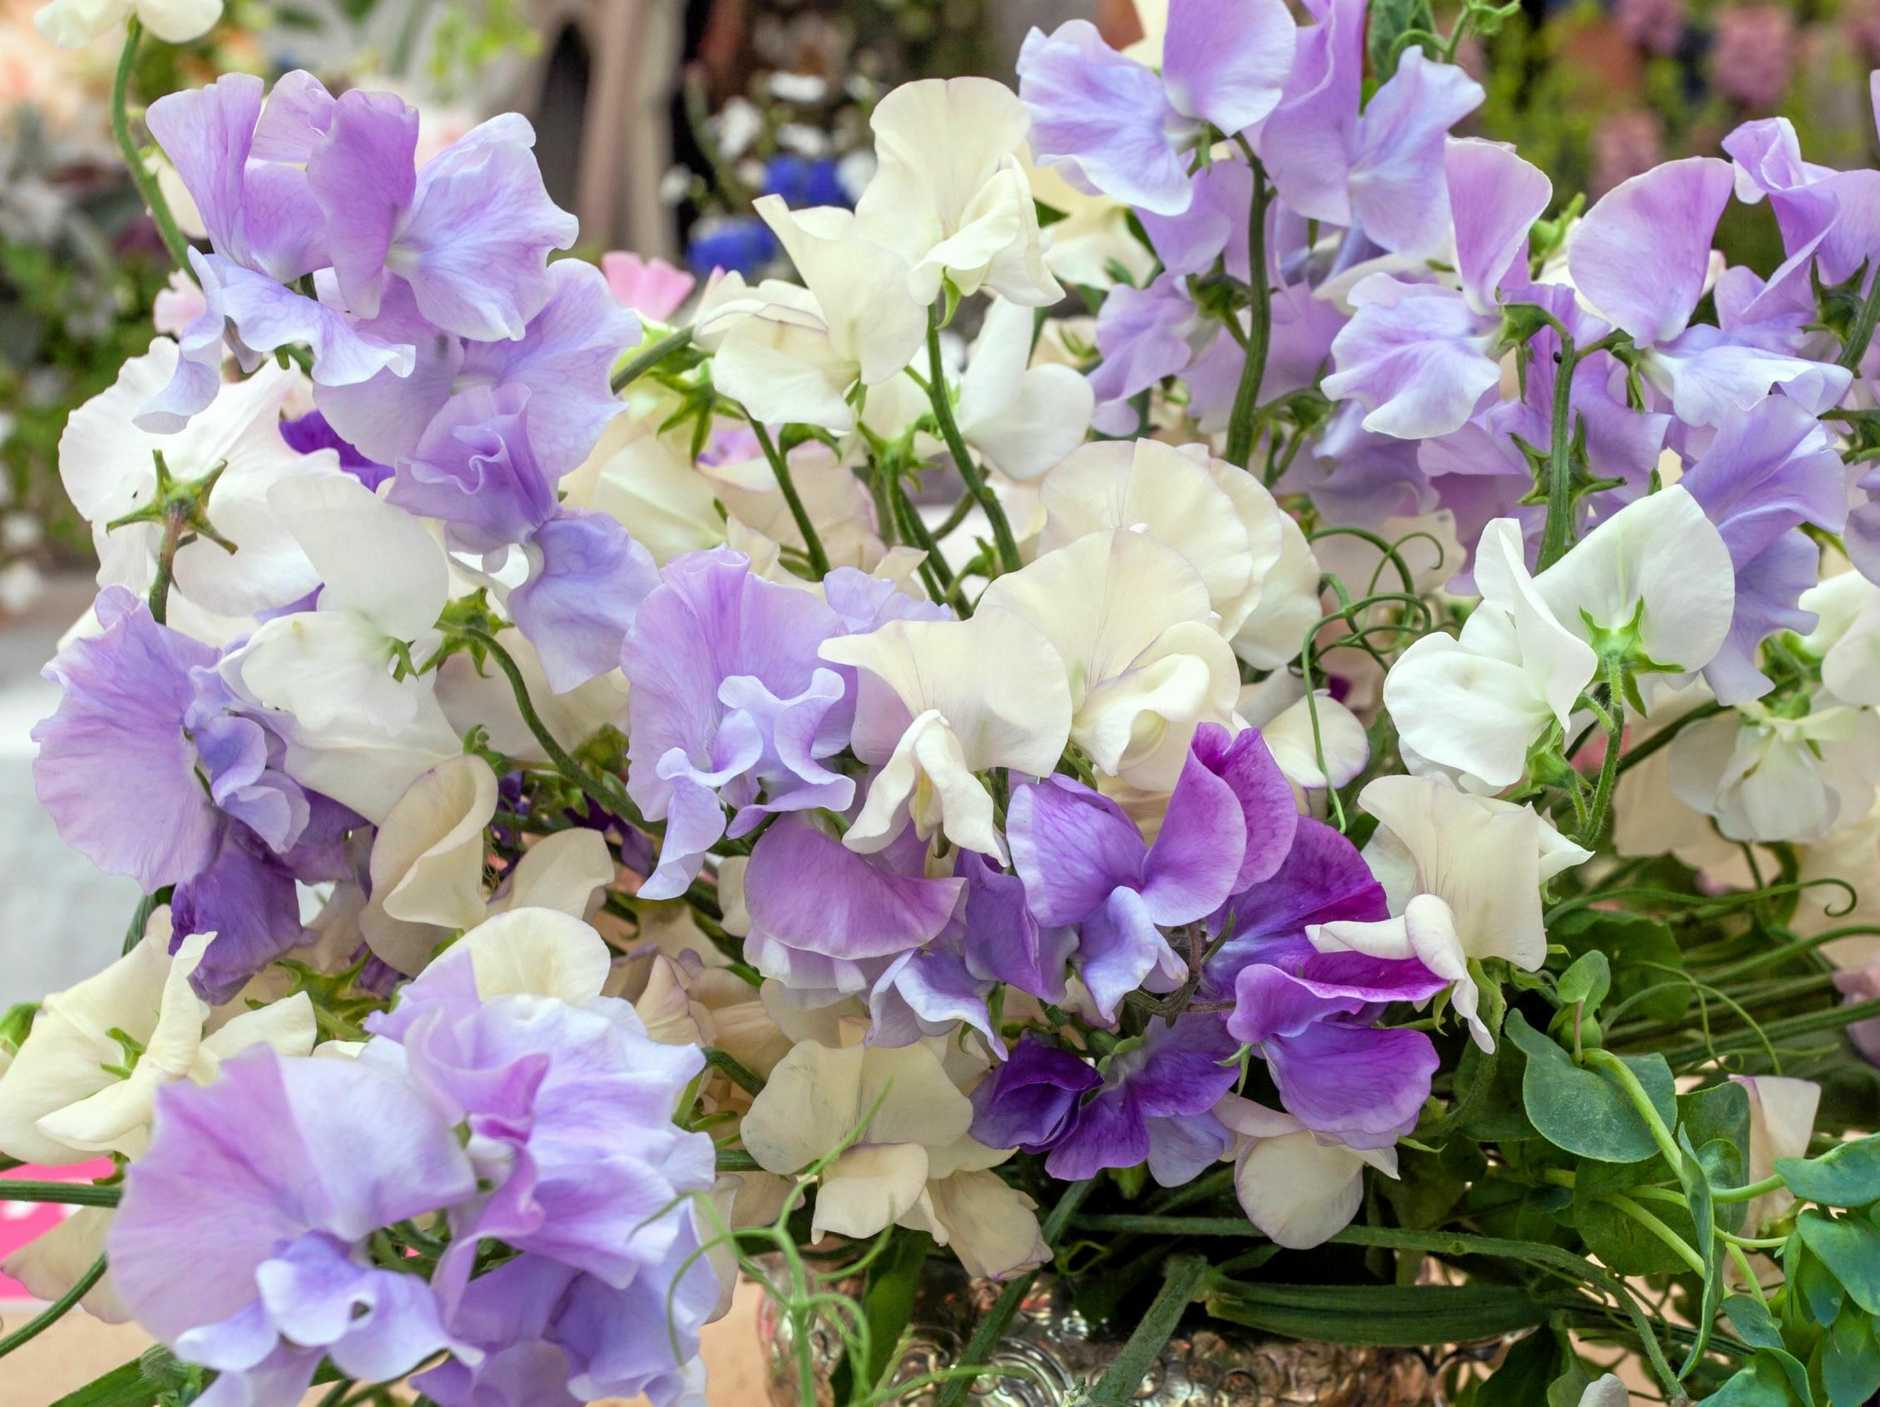 Sweet peas bloom prolifically and make a lovely cut flower.